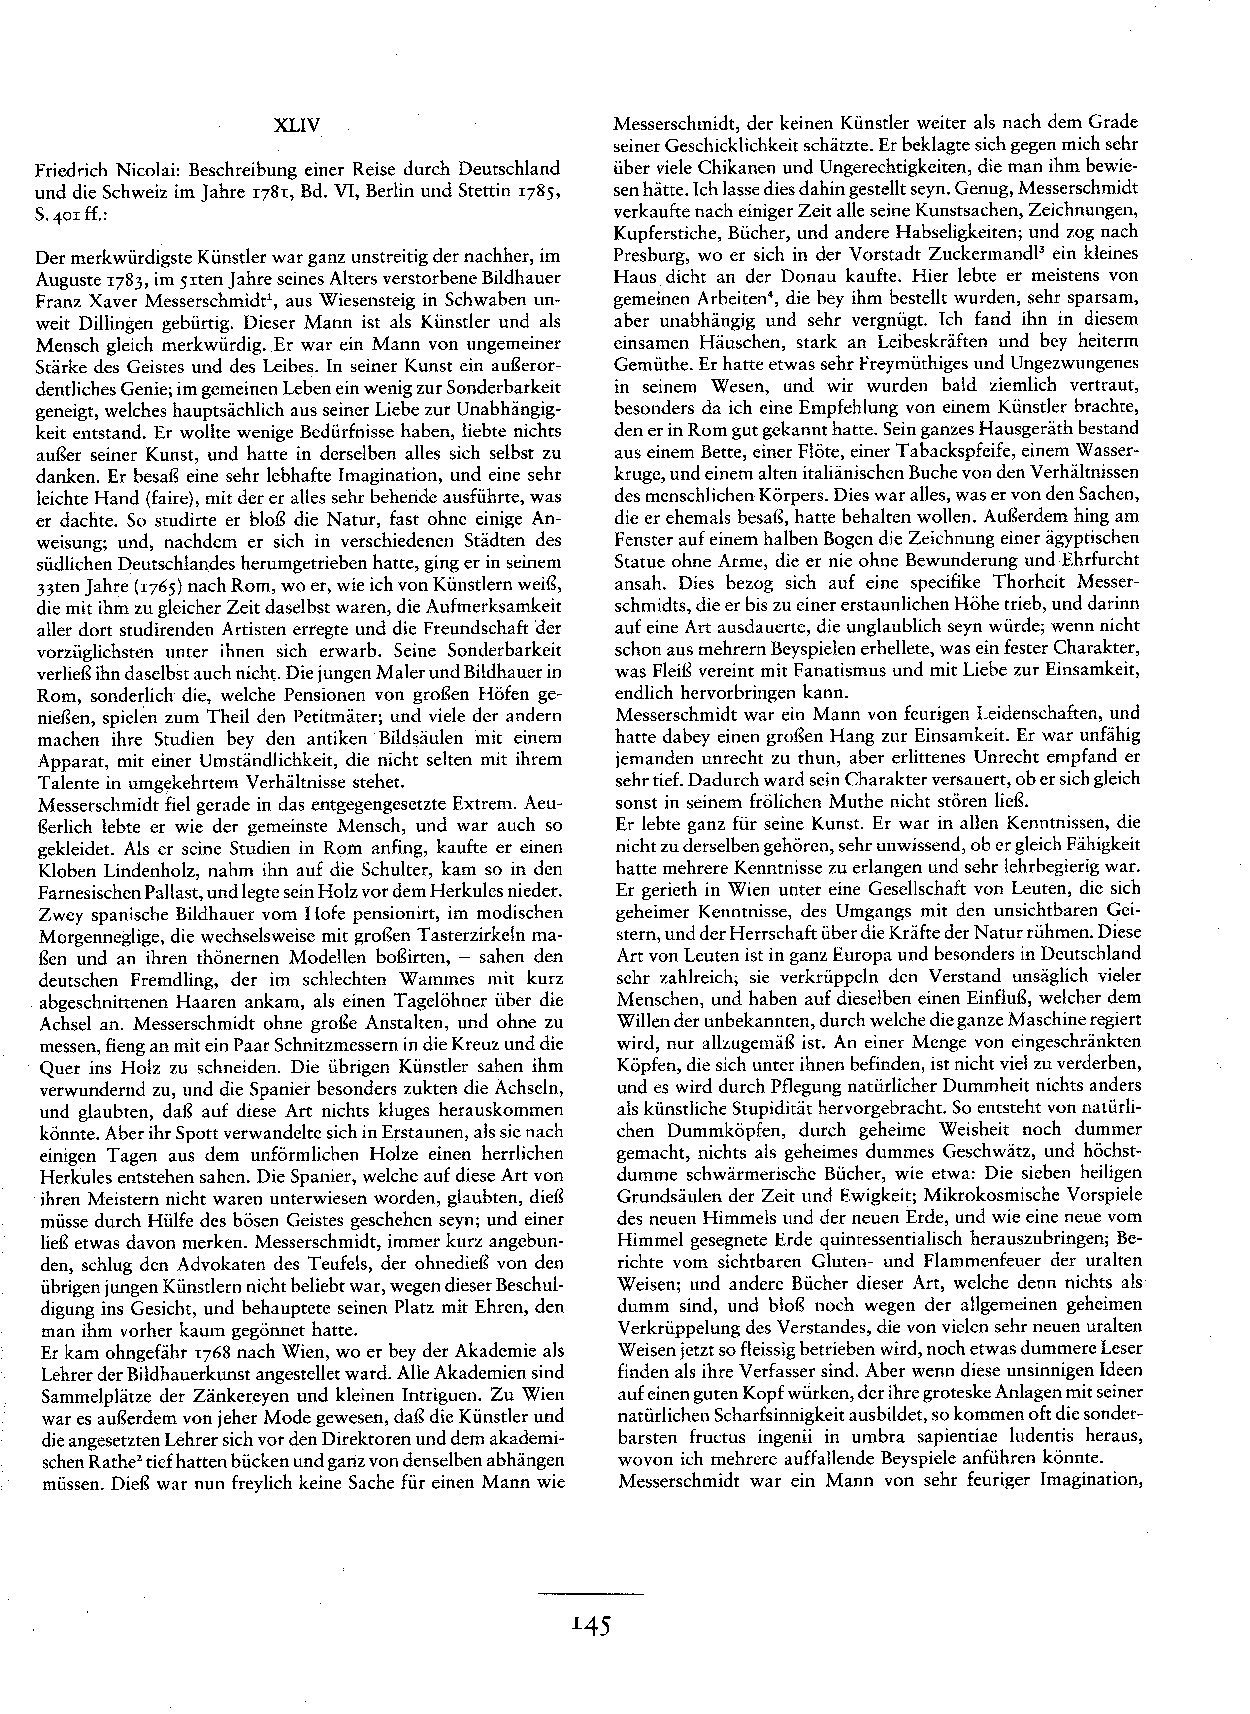 click pages to see the full size german original